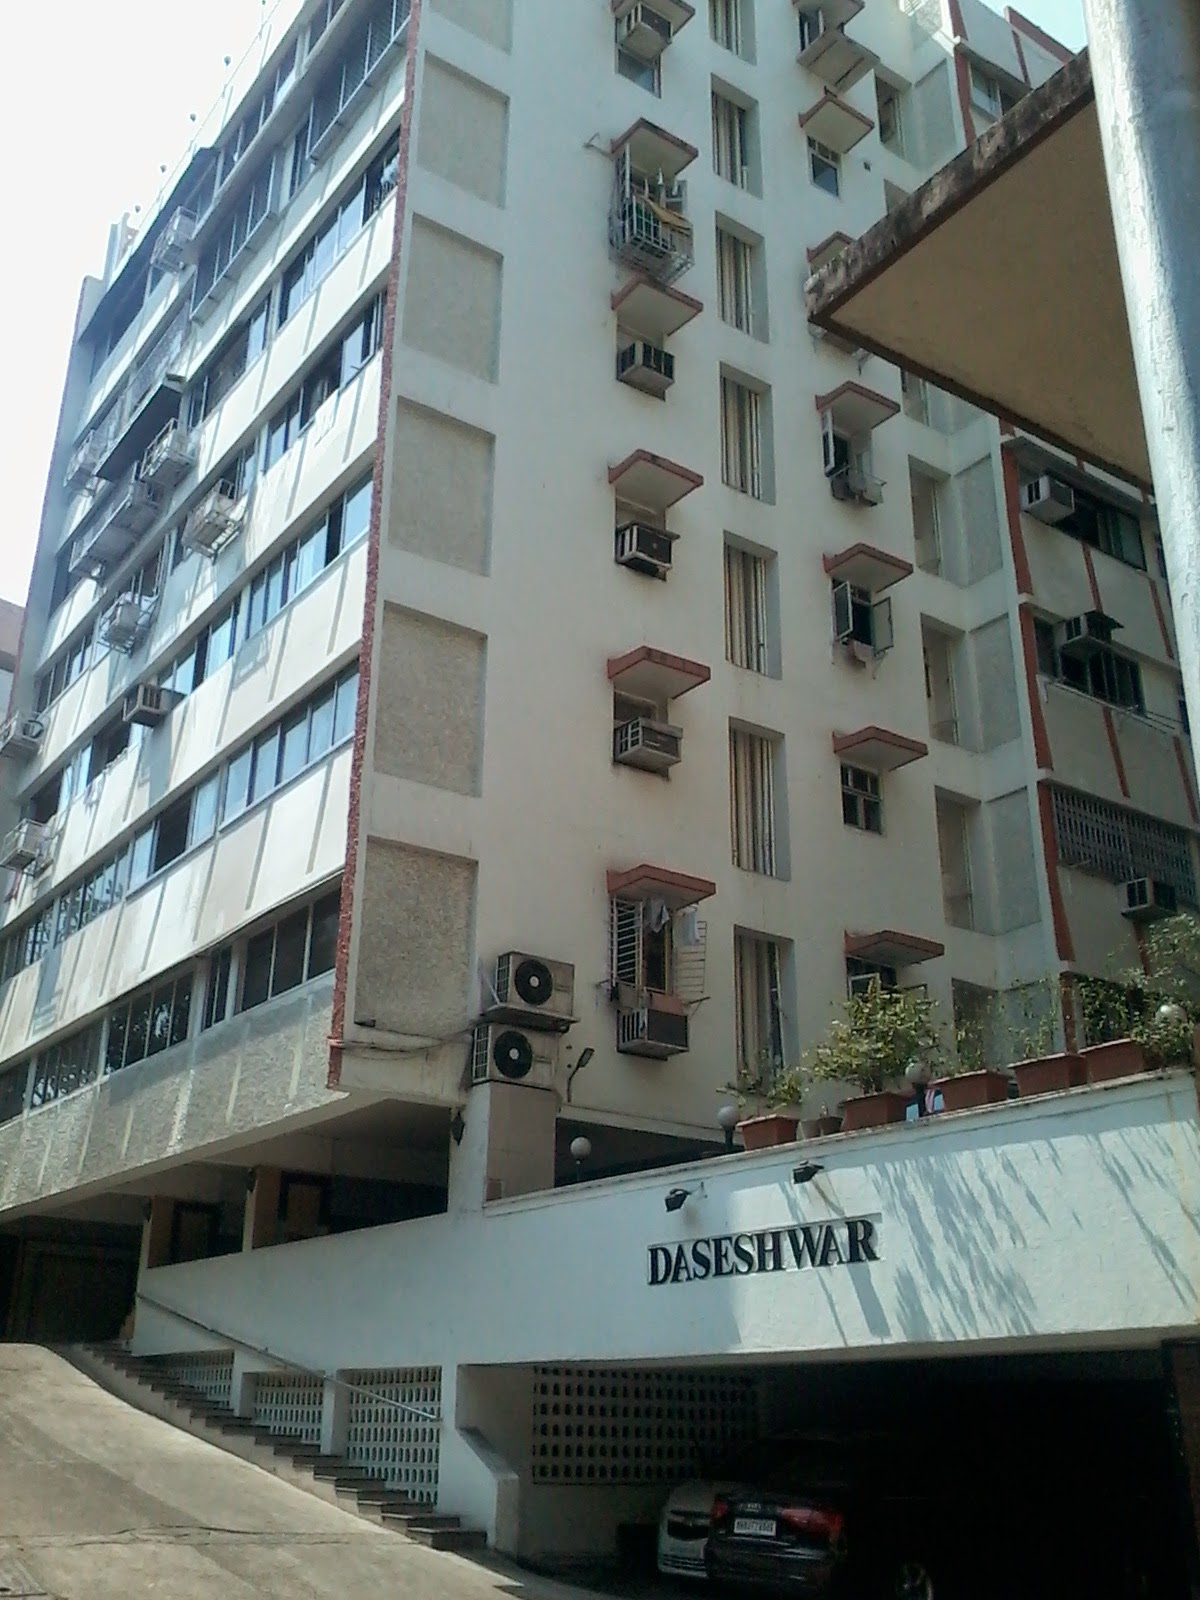 daseshwar apartment 2bhk sea view flat apartment for sale